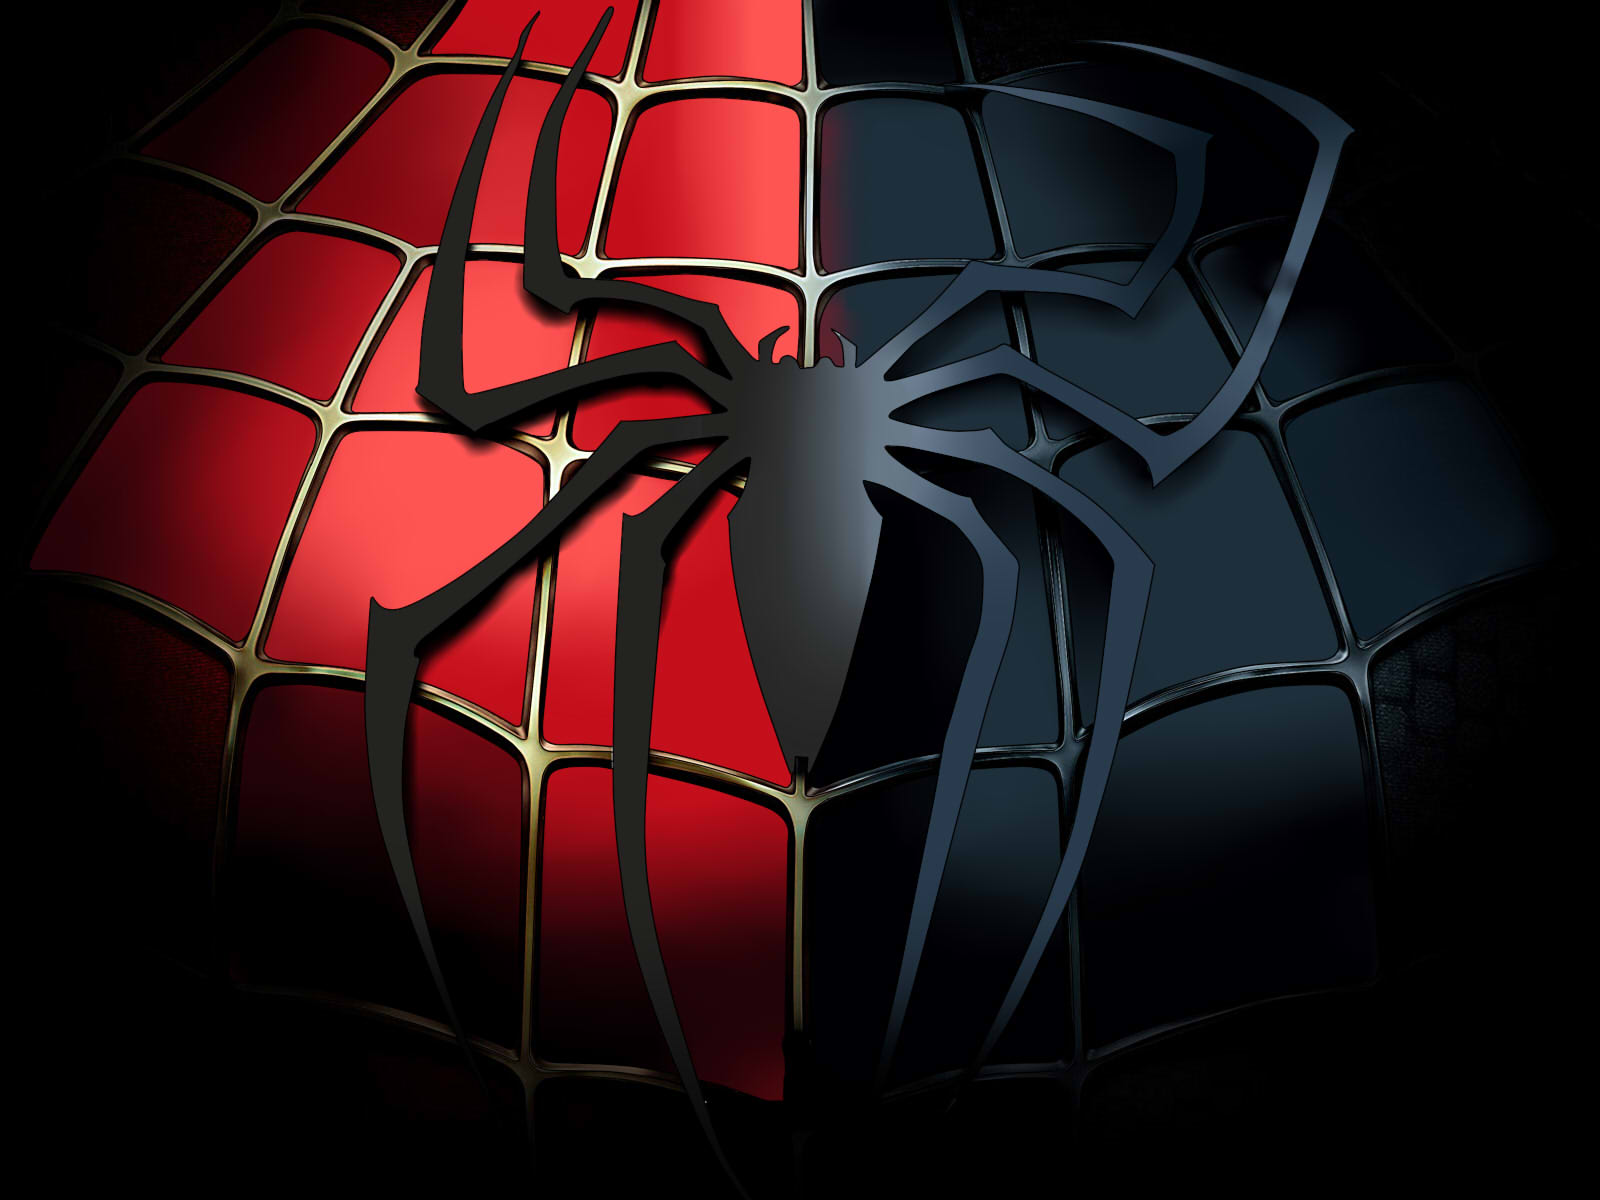 Black spiderman symbol - photo#14